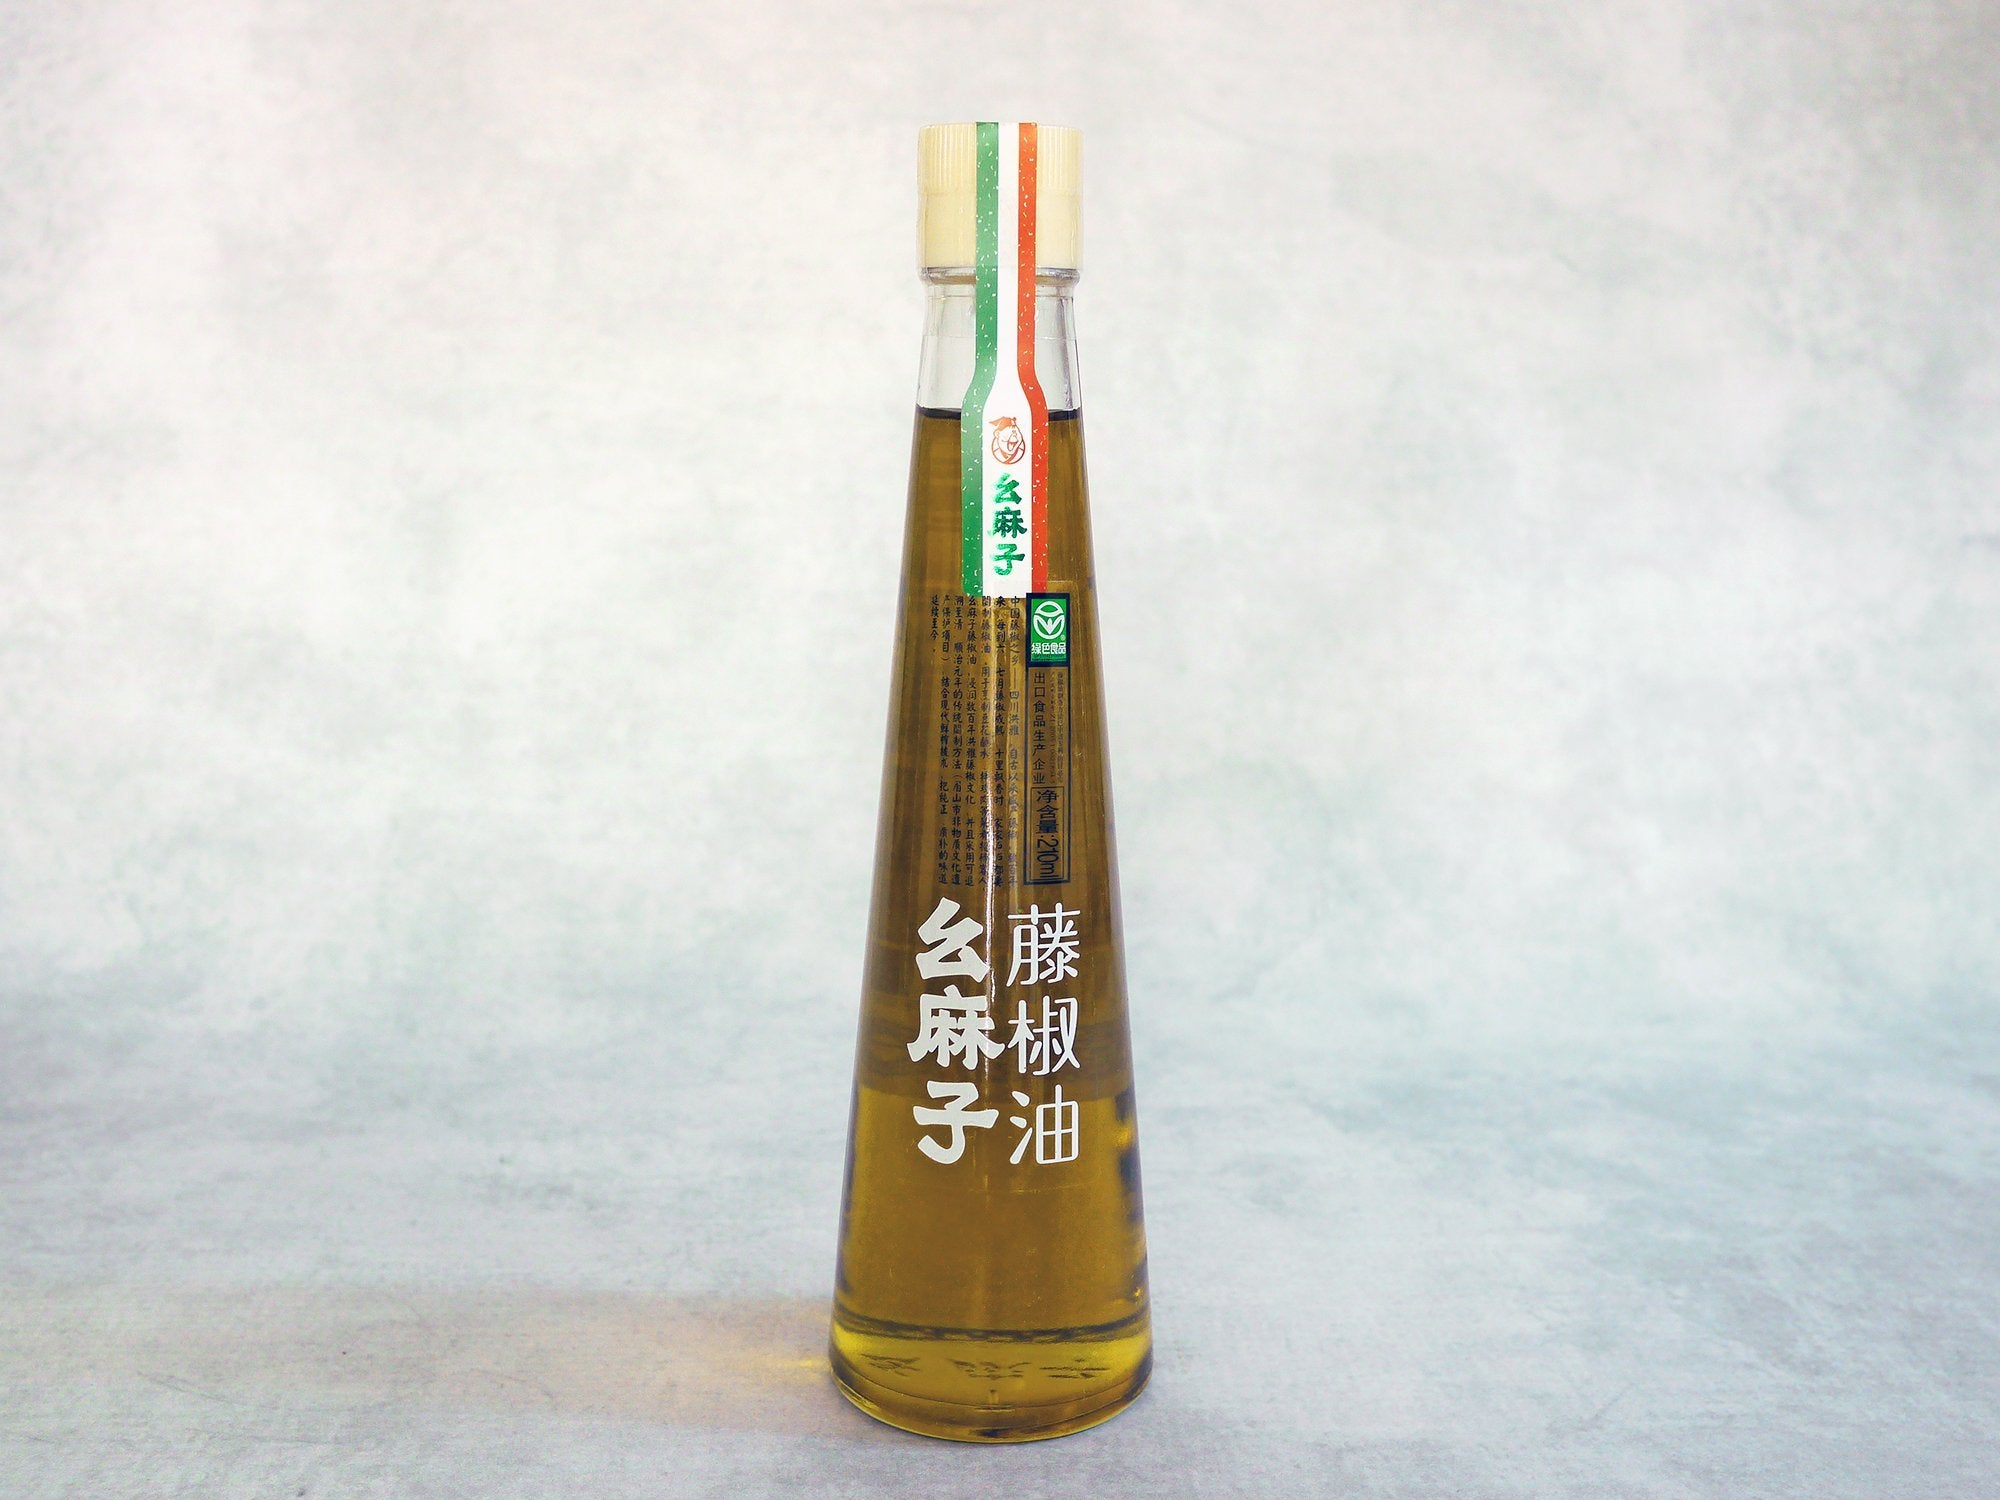 Sichuan Pepper Oil (Yaomazi Rattan Pepper Oil)